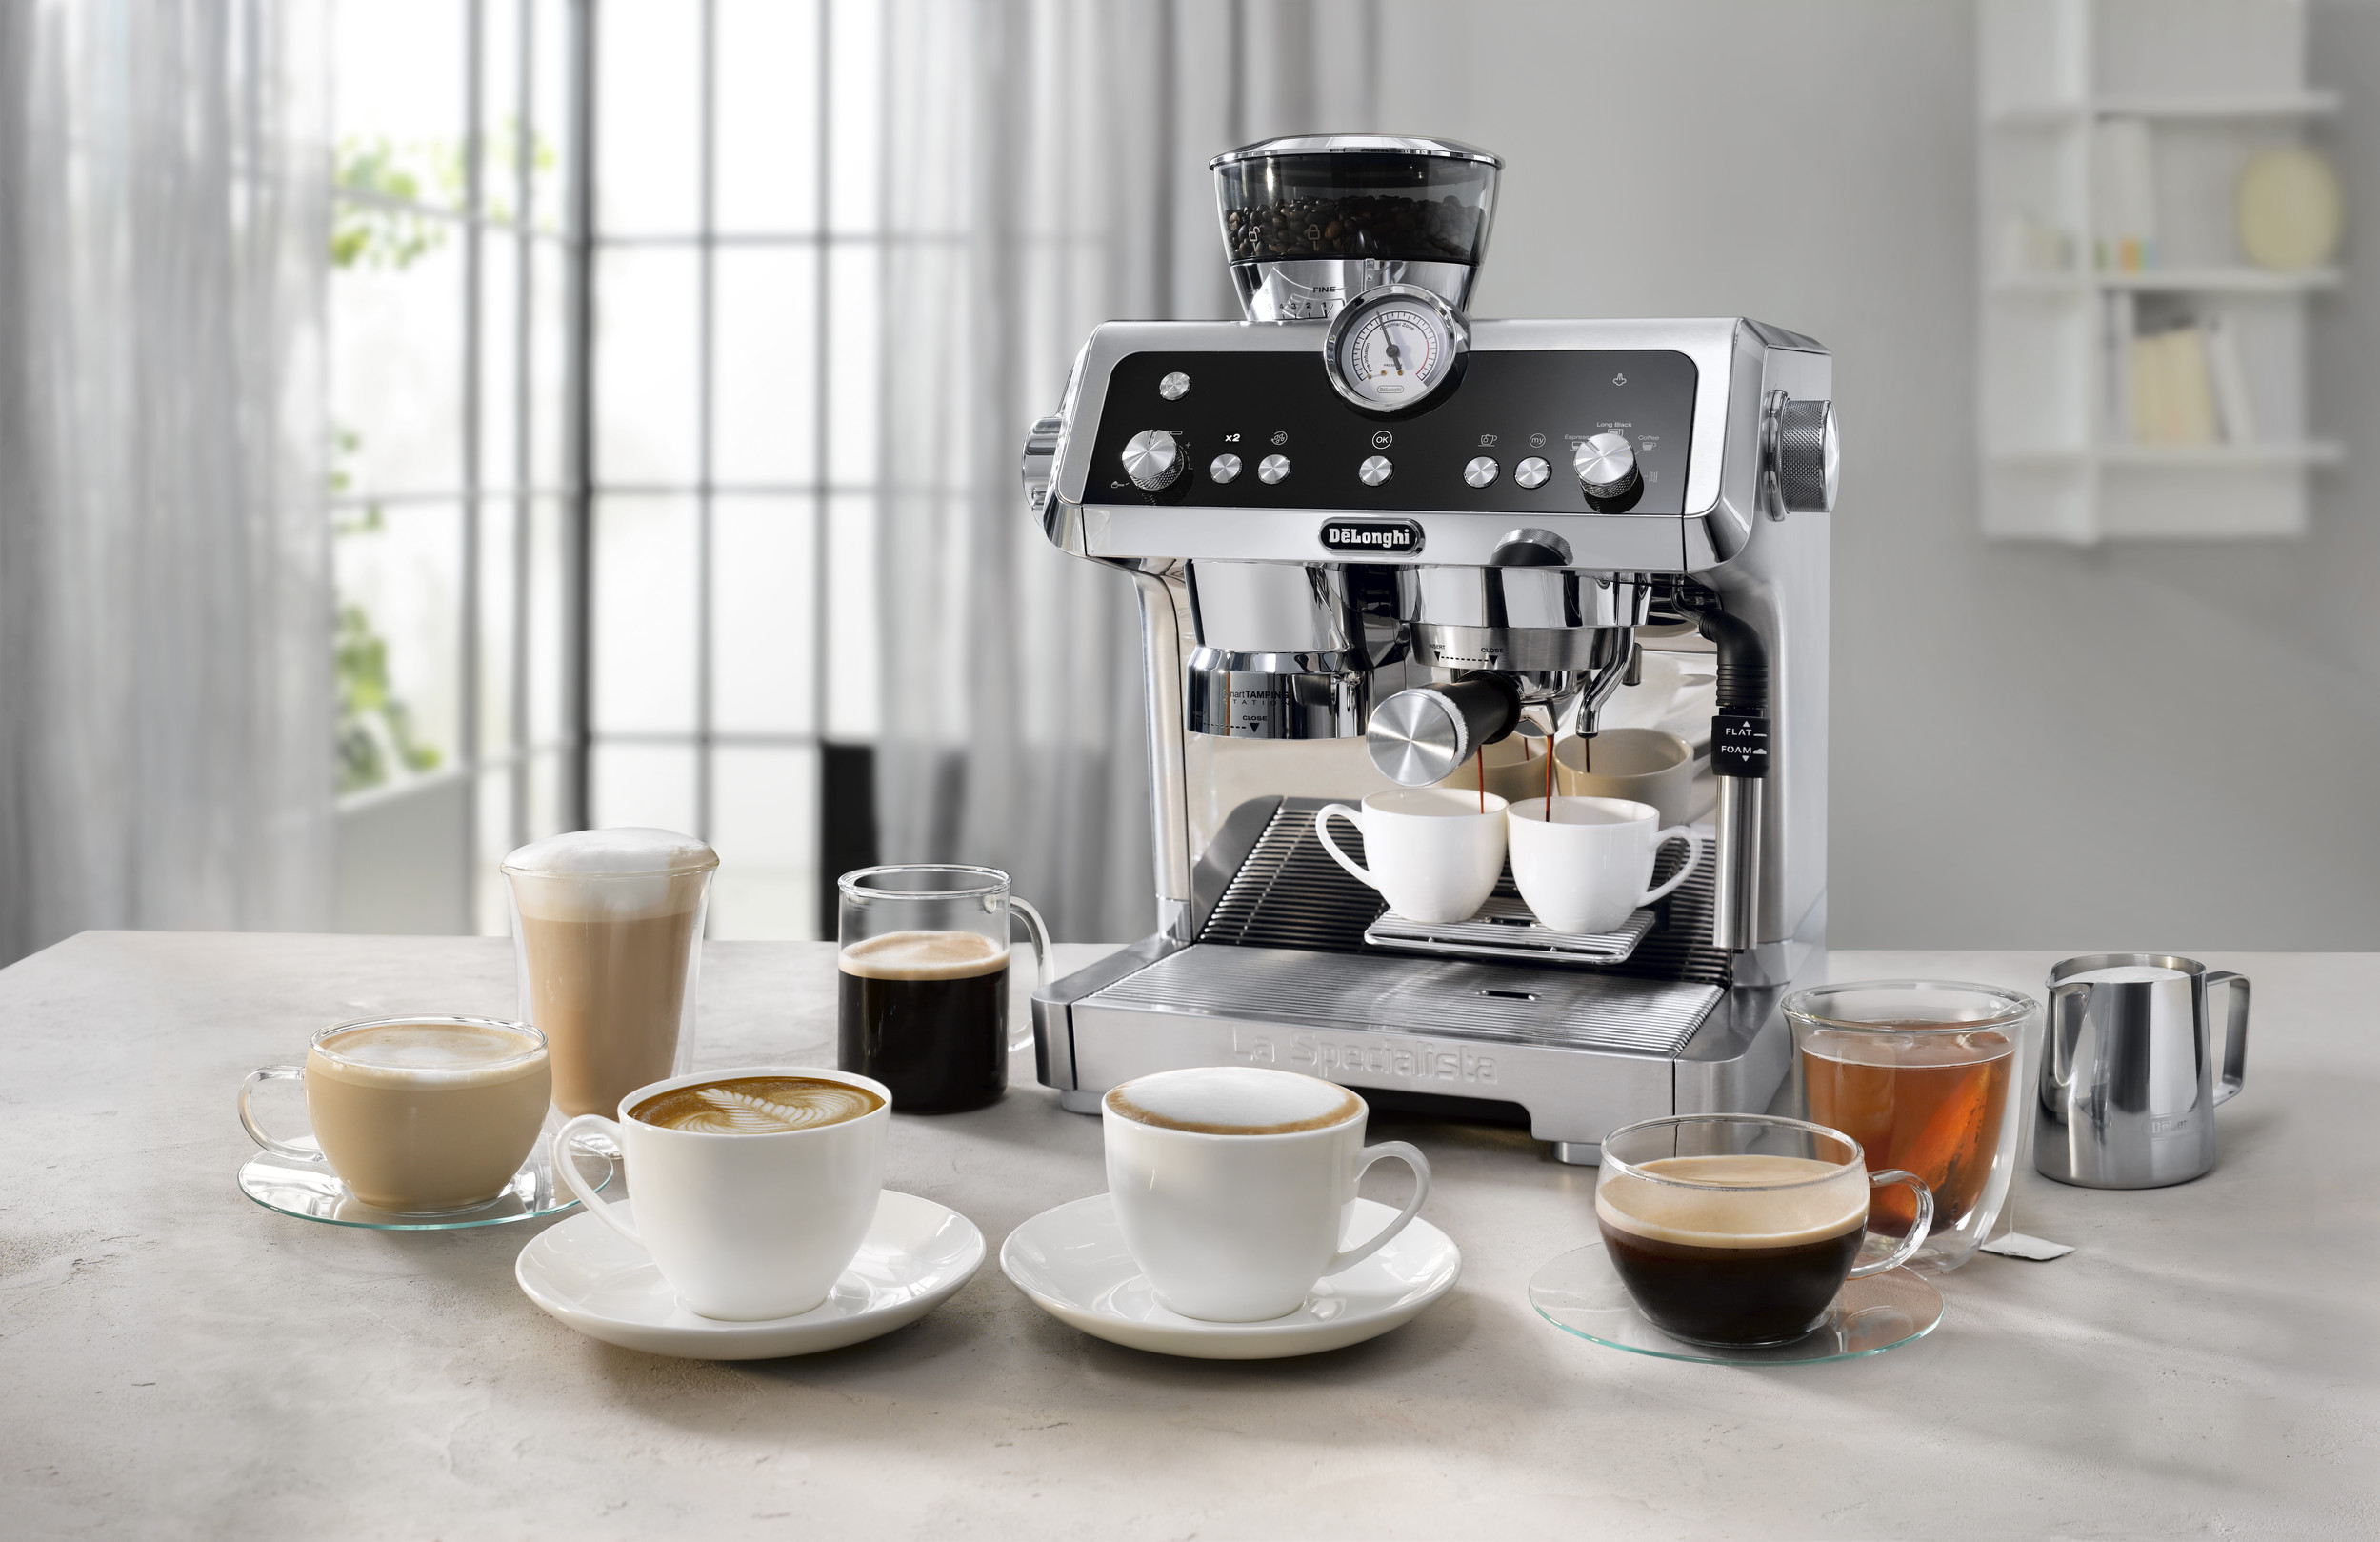 multiple coffee beverages placed in front of a coffee machine